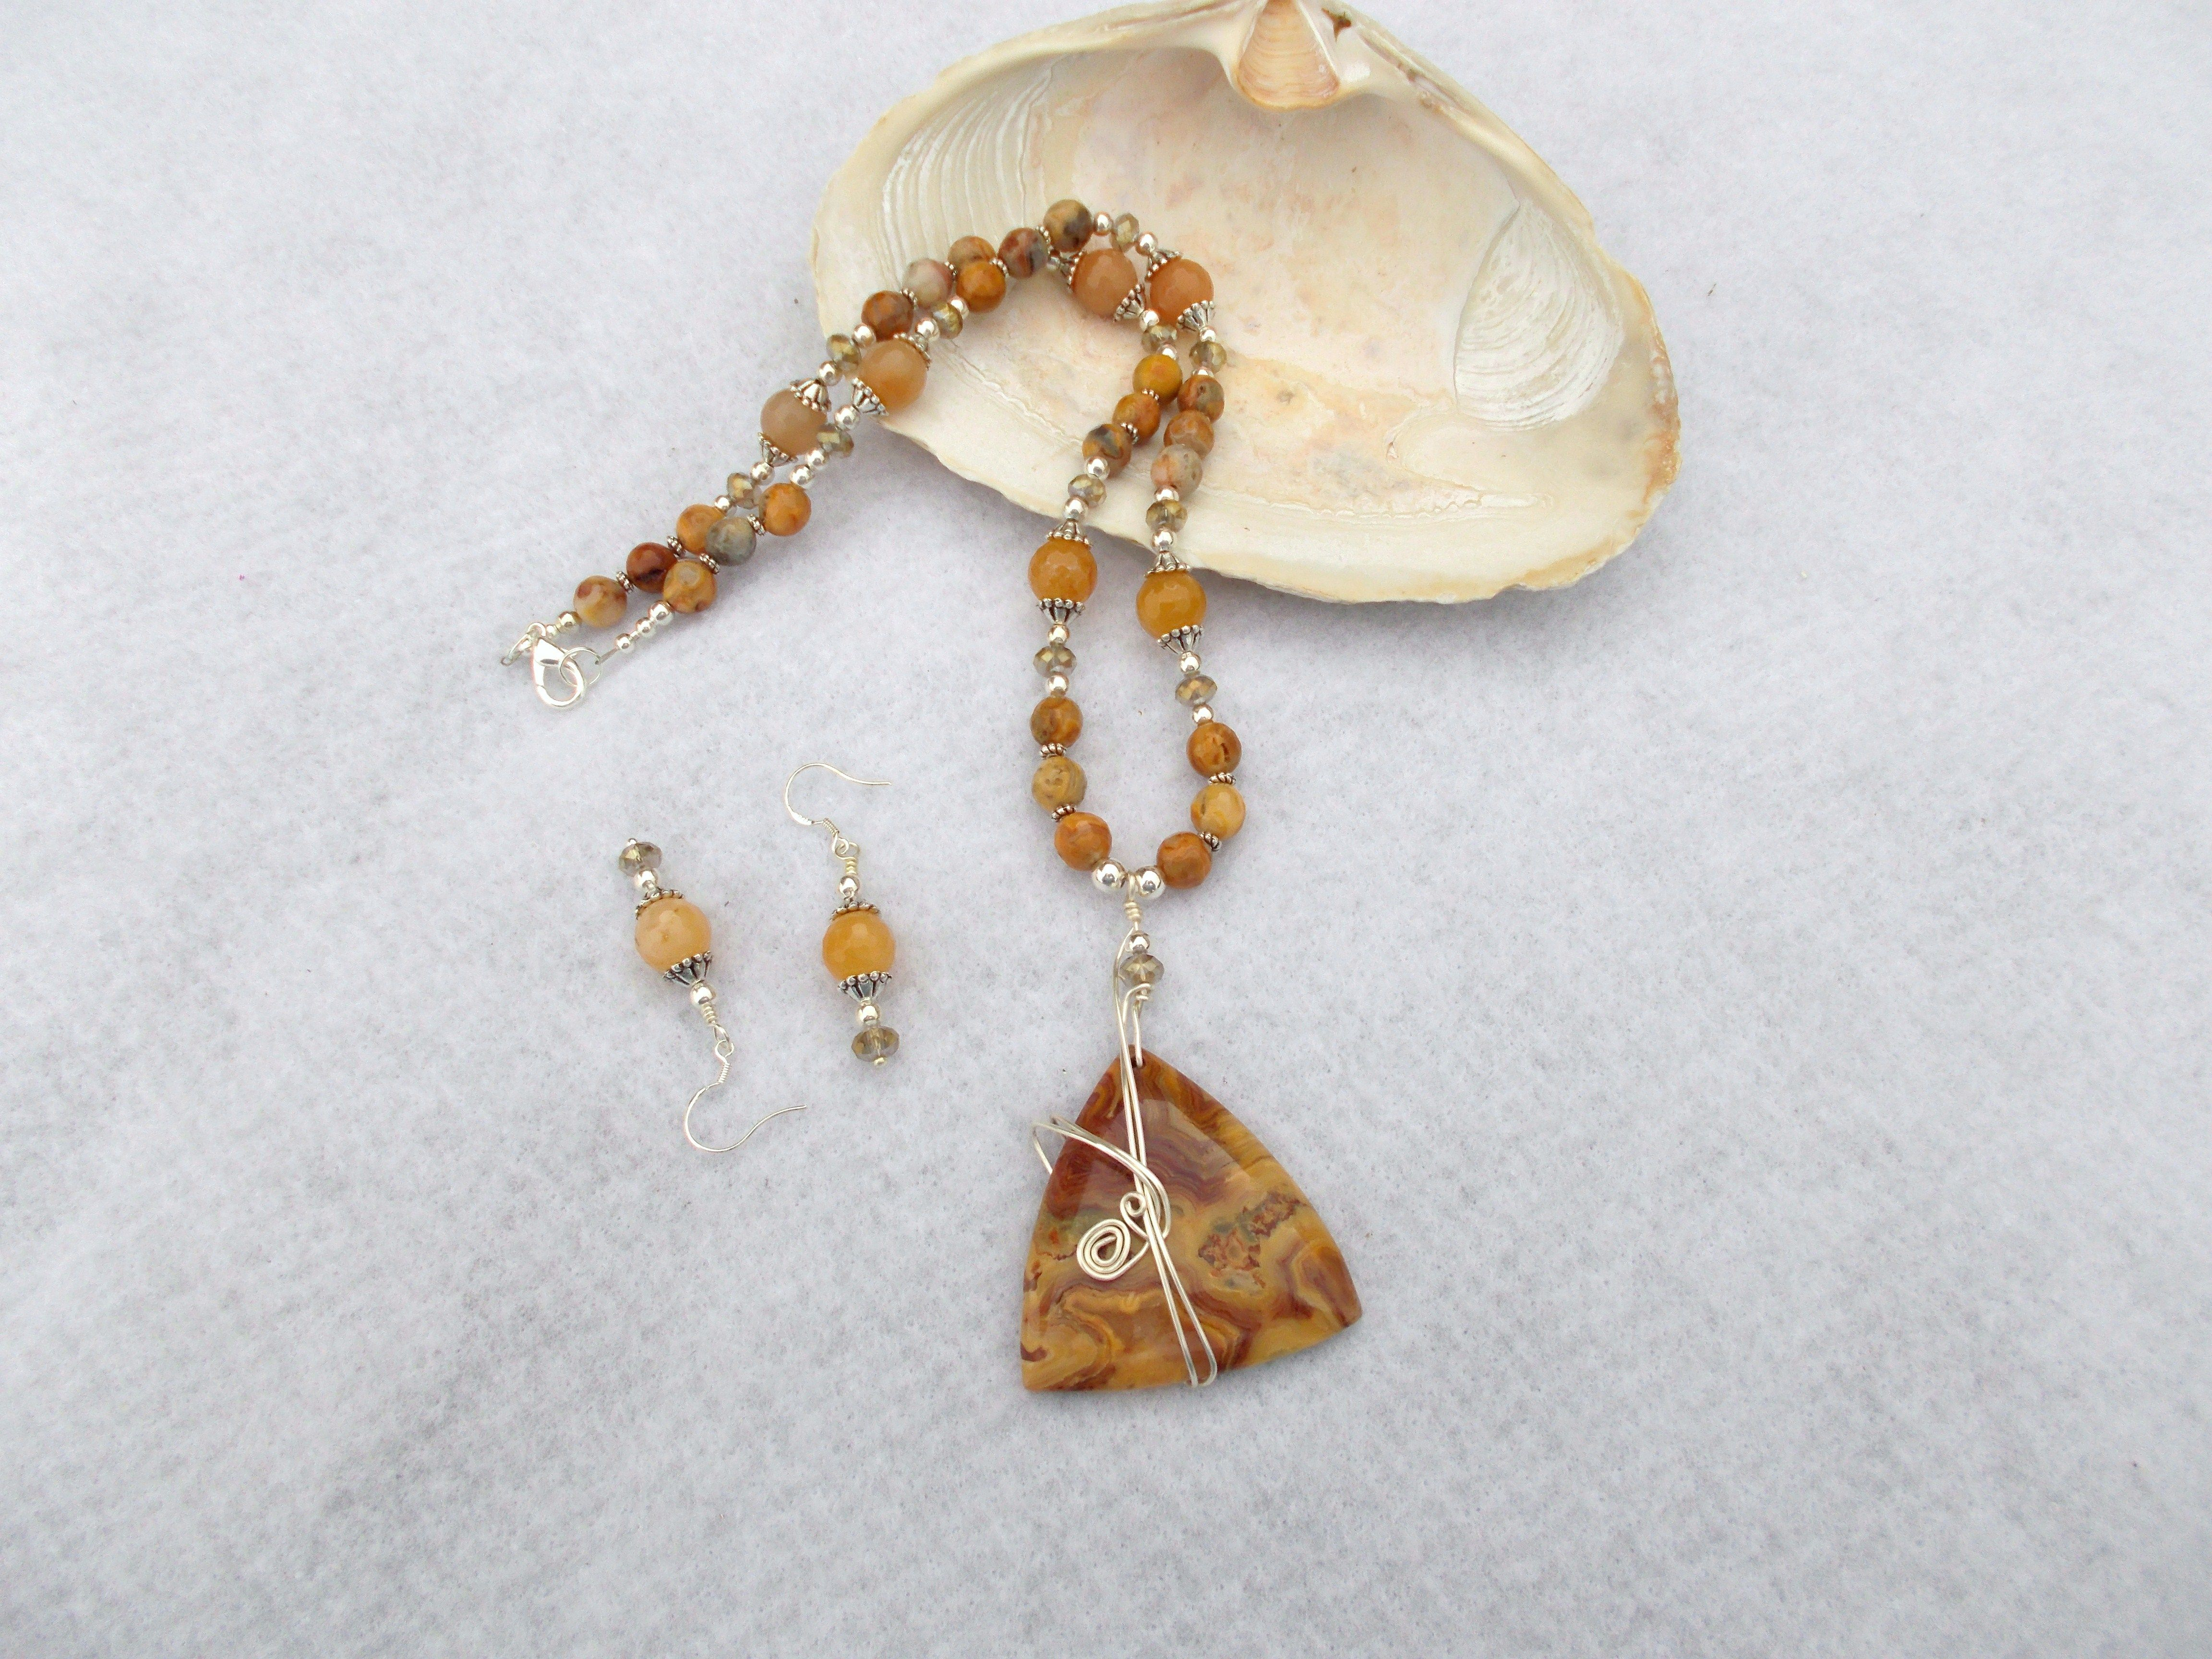 Wire wrapped crazy lace agate pendant necklace and earrings. Sold